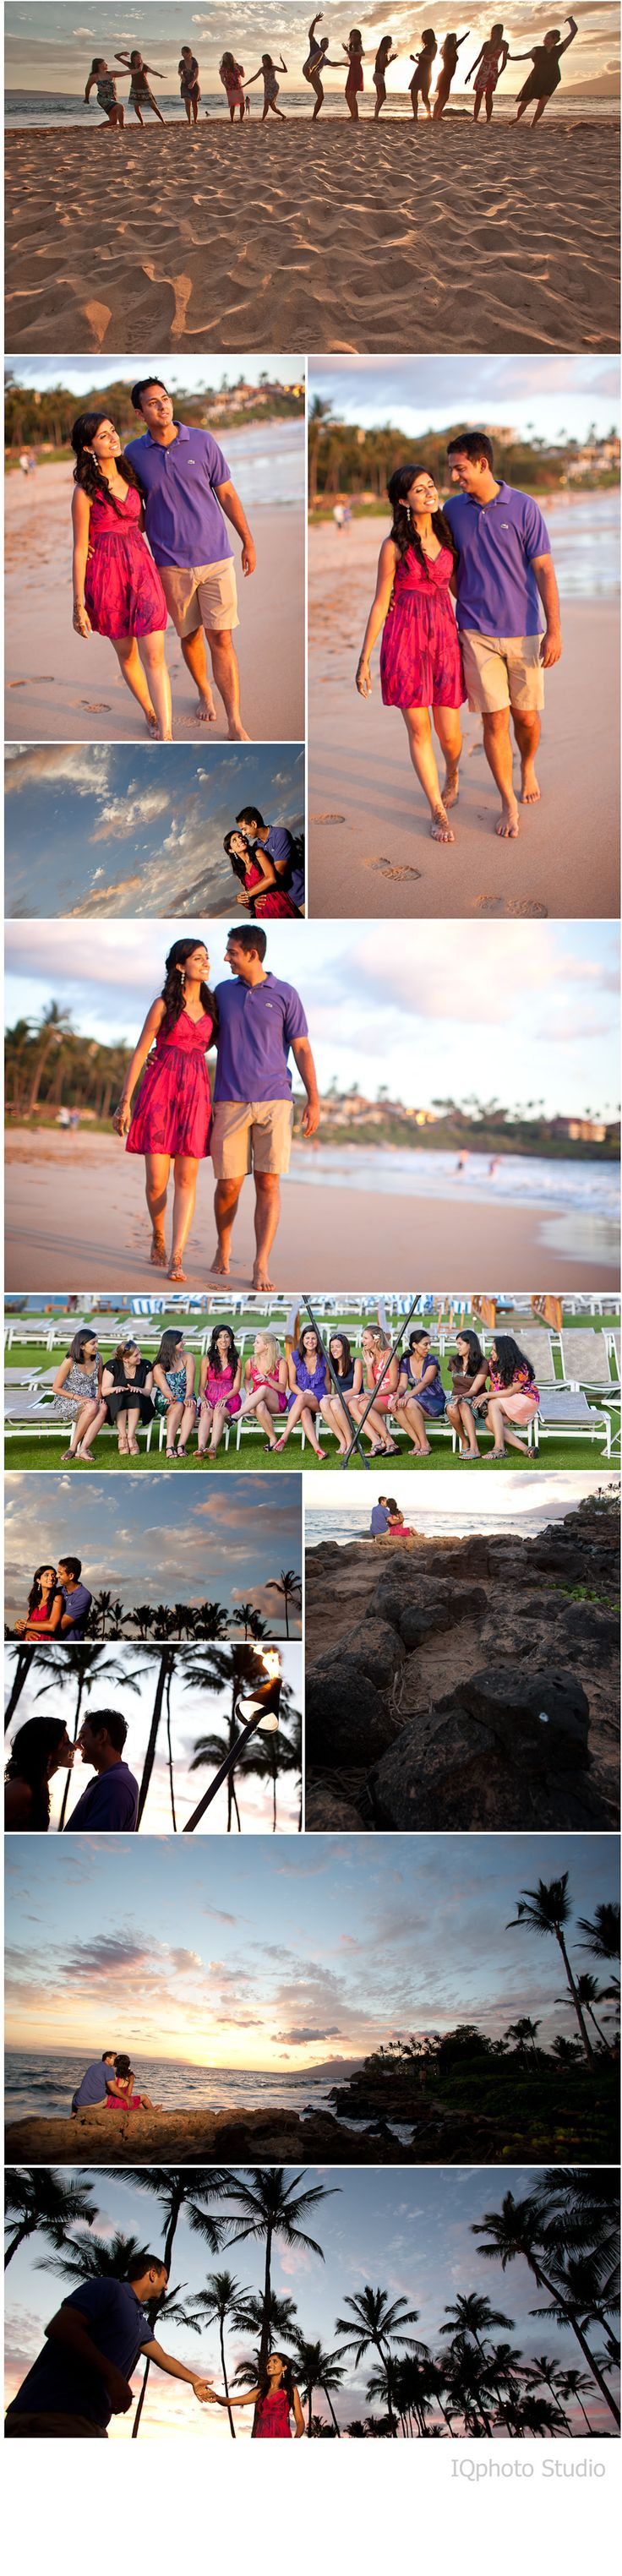 Beautiful Indian Destination Wedding in Maui, Hawaii. Photography by www.IQphoto.com